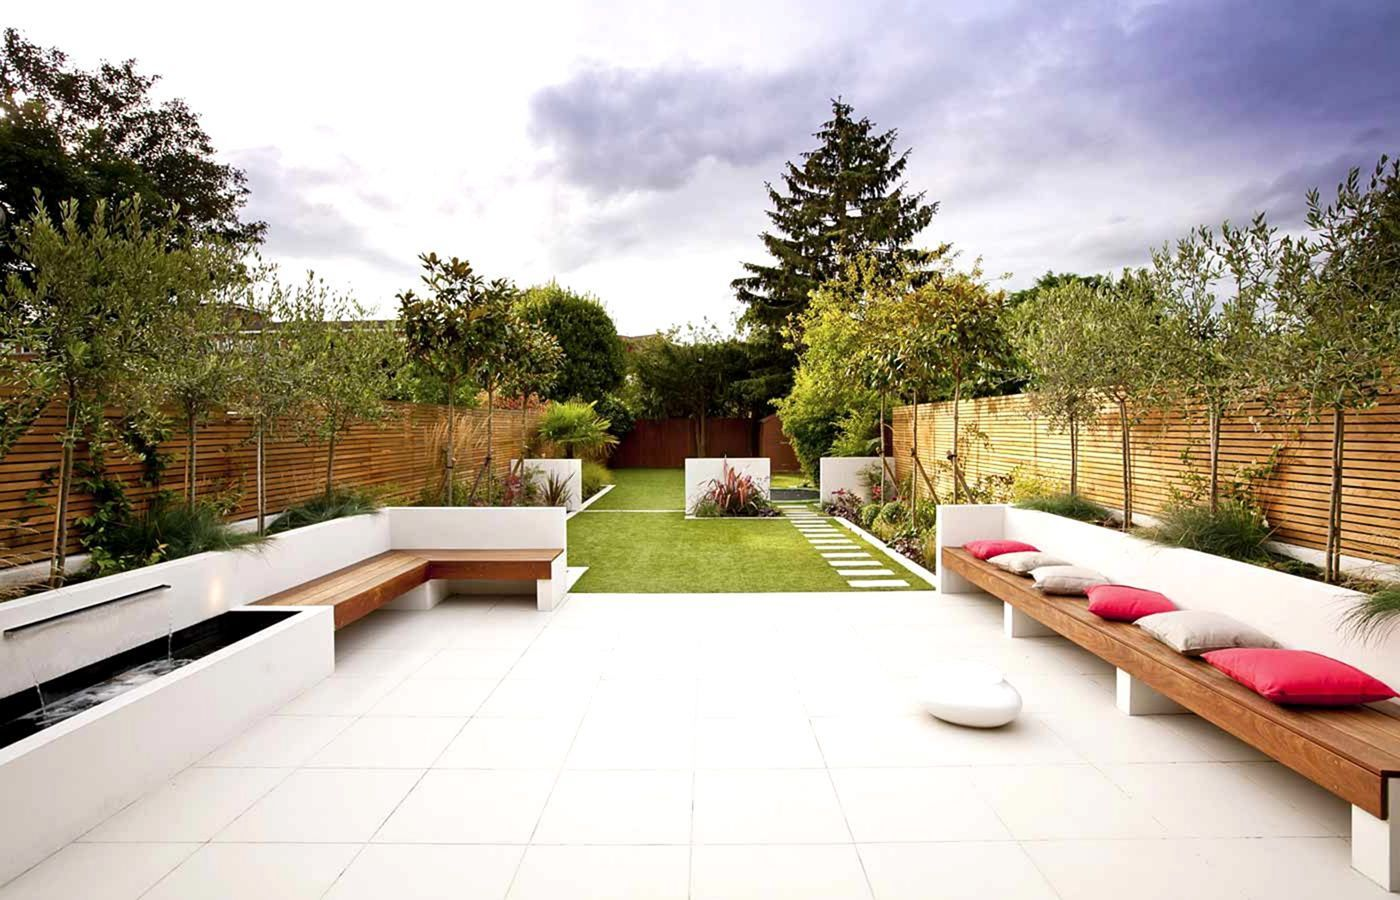 30 Fantastic Modern Backyard Landscaping Designs For Your ... on Long Narrow Yard Landscape Design Ideas id=86489